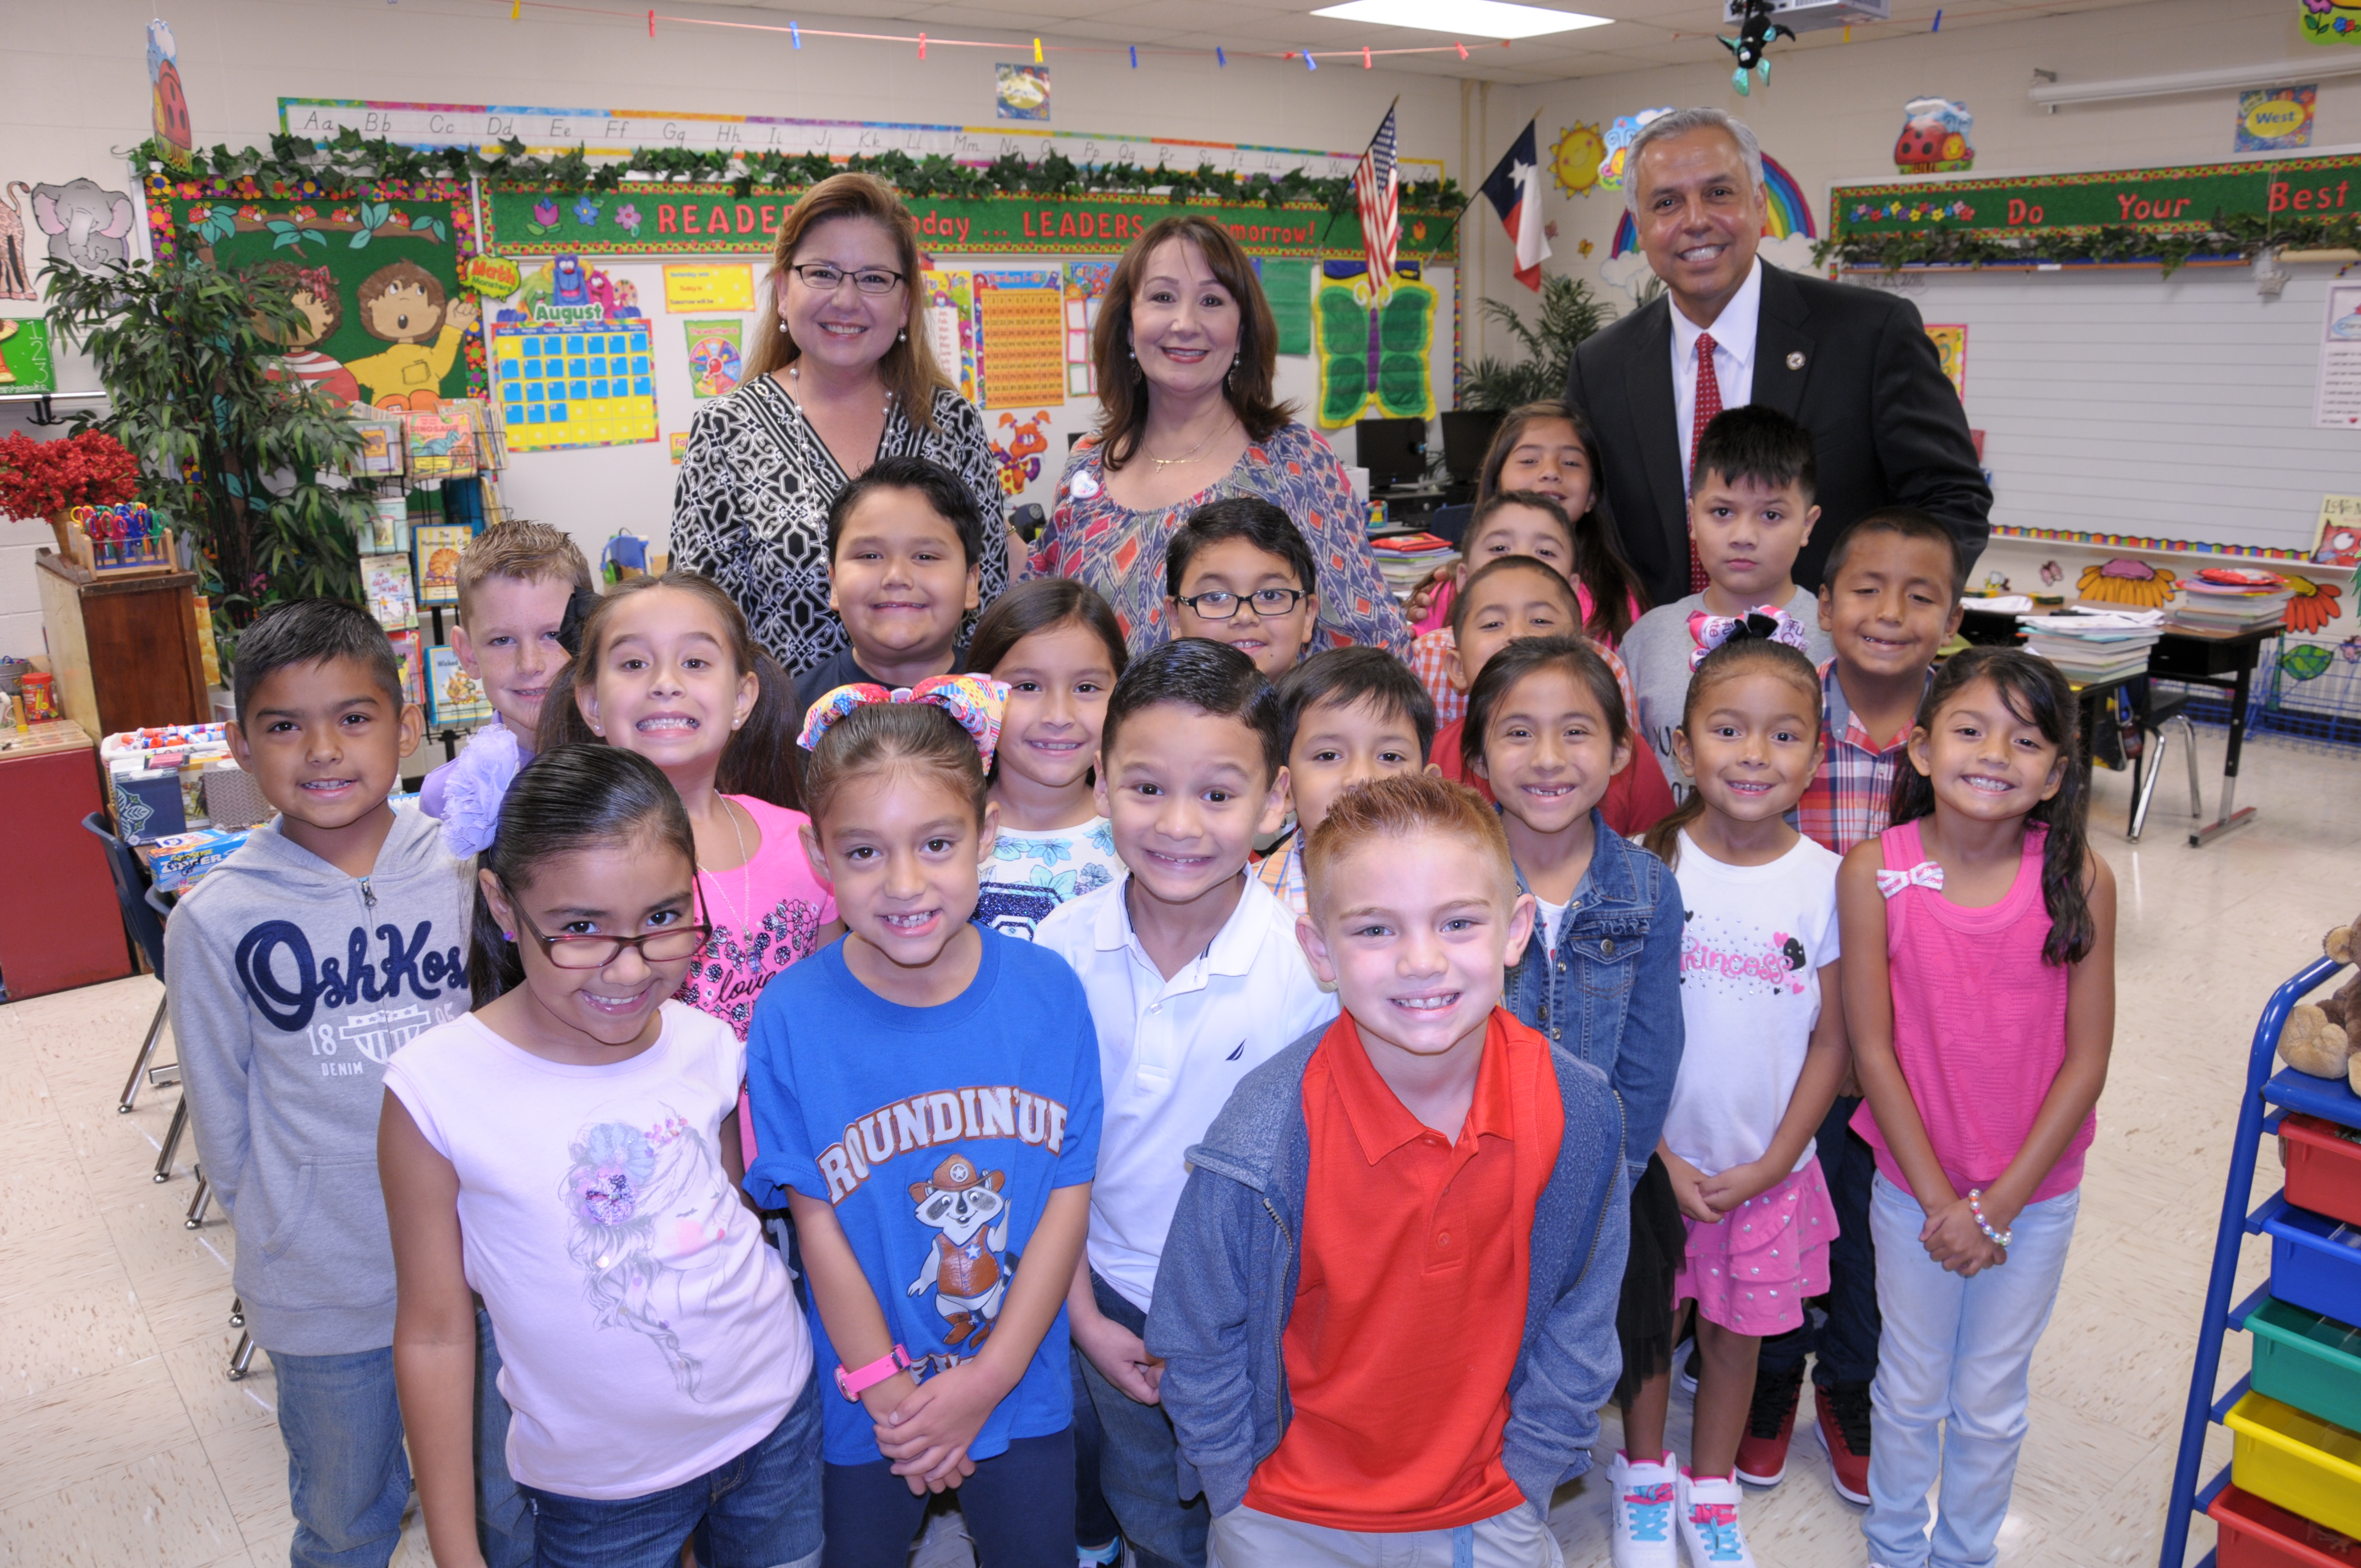 HCISD welcomes students to the 2016-2017 school year